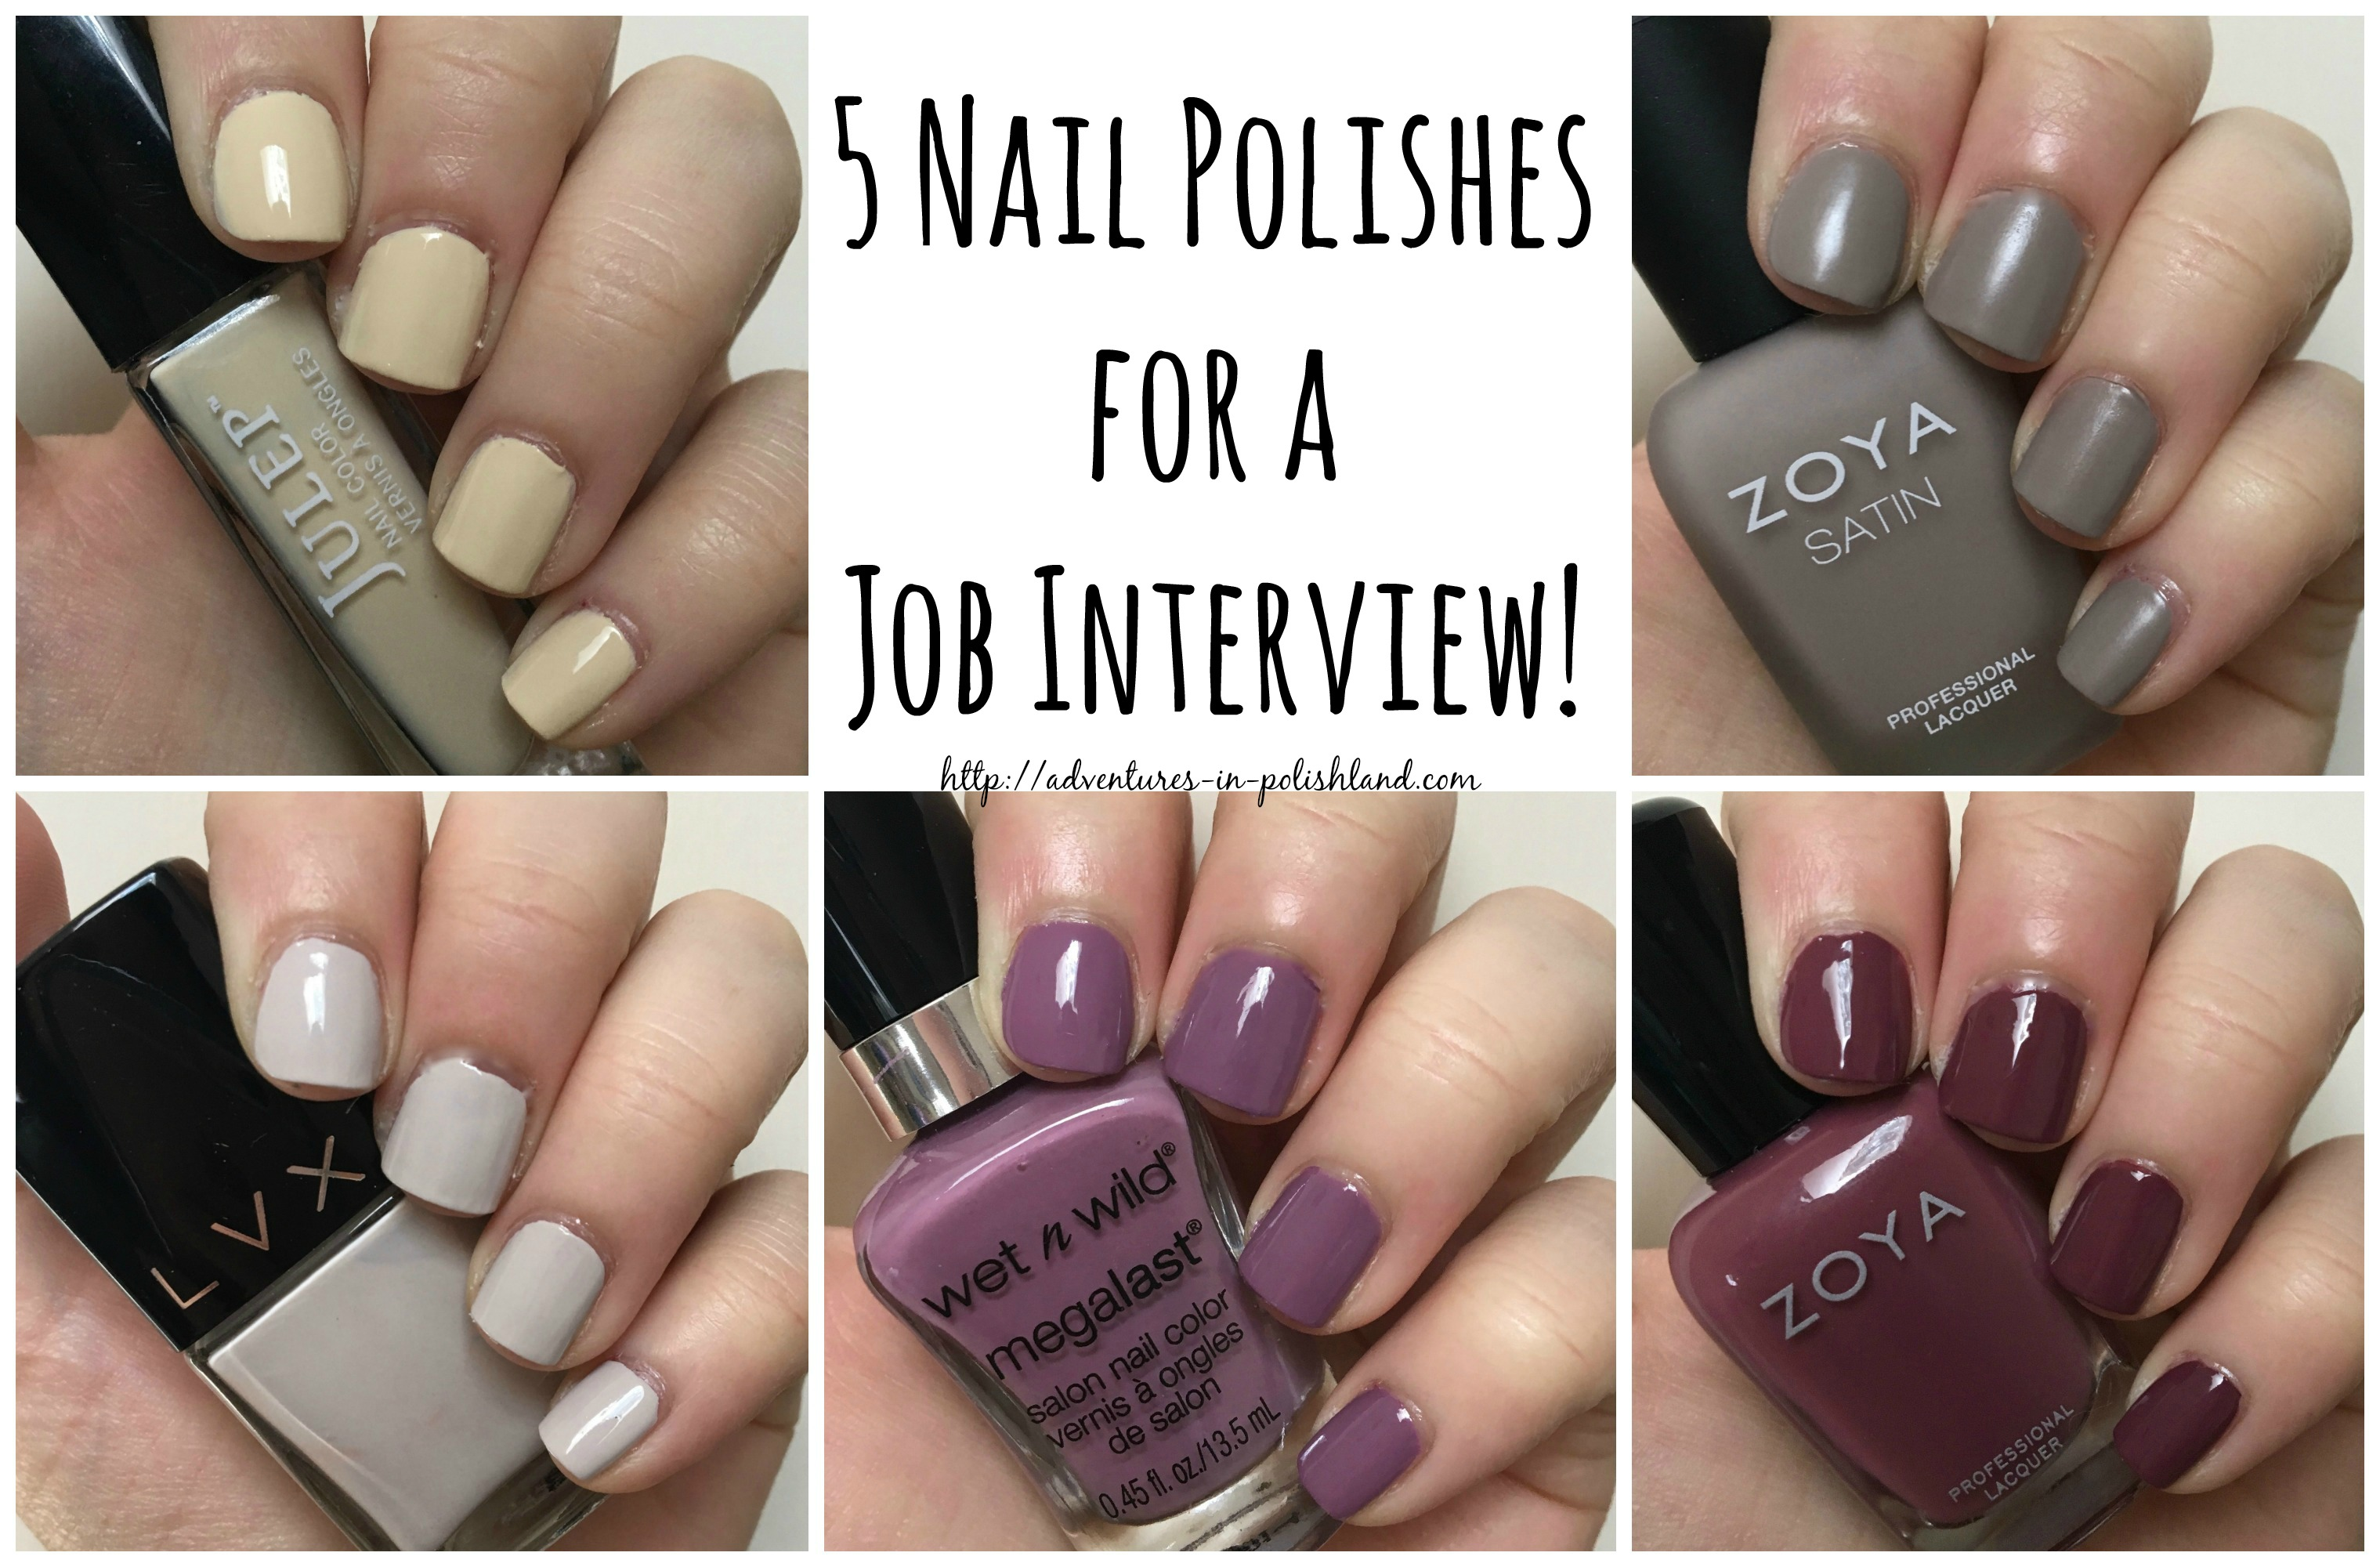 5 Nail Polishes for a Job Interview \u2013 Adventures in Polishland